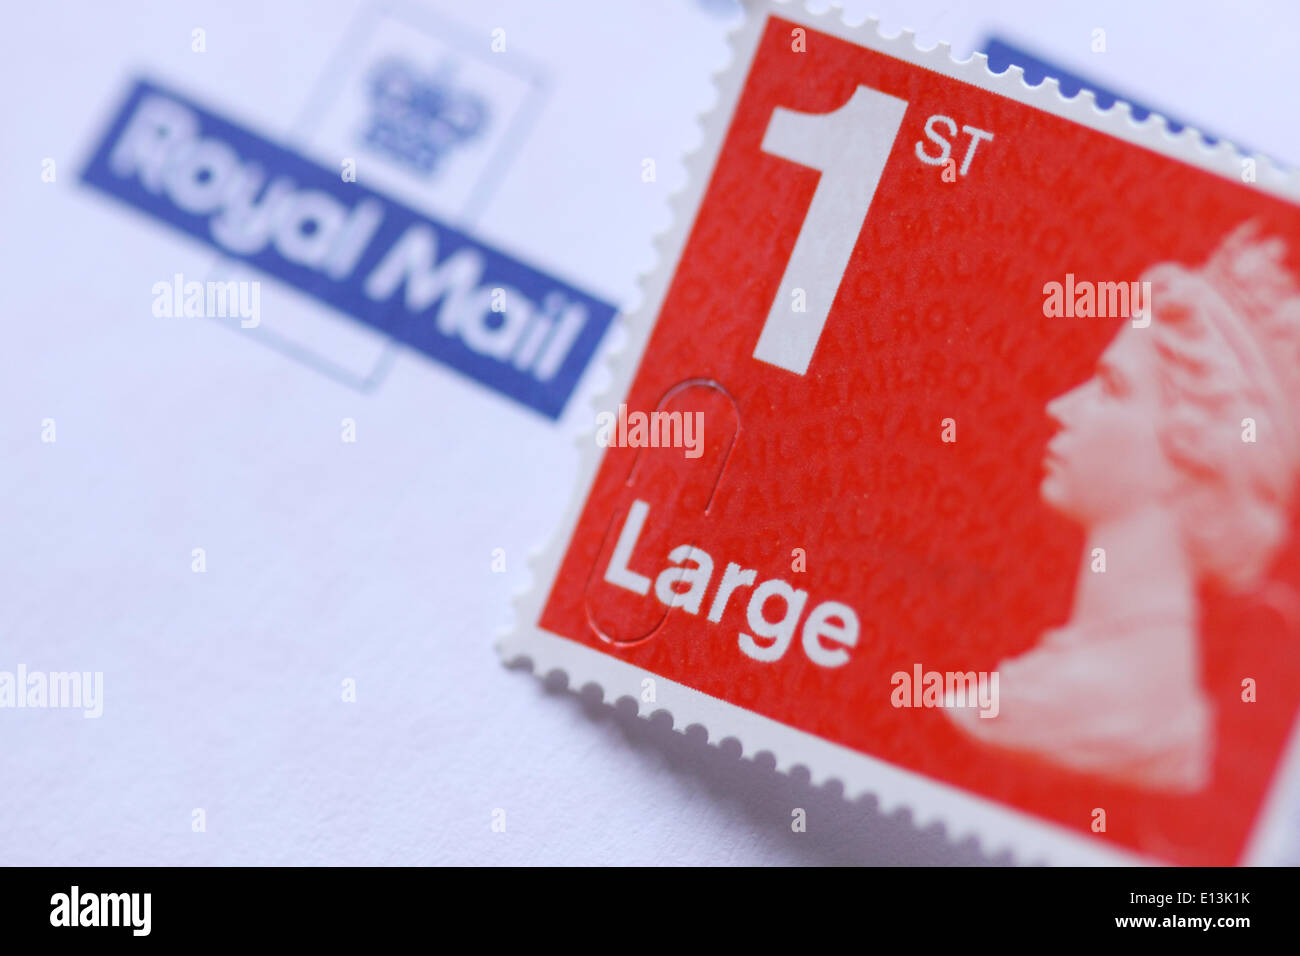 Royal Mail Large first class stamp - Stock Image